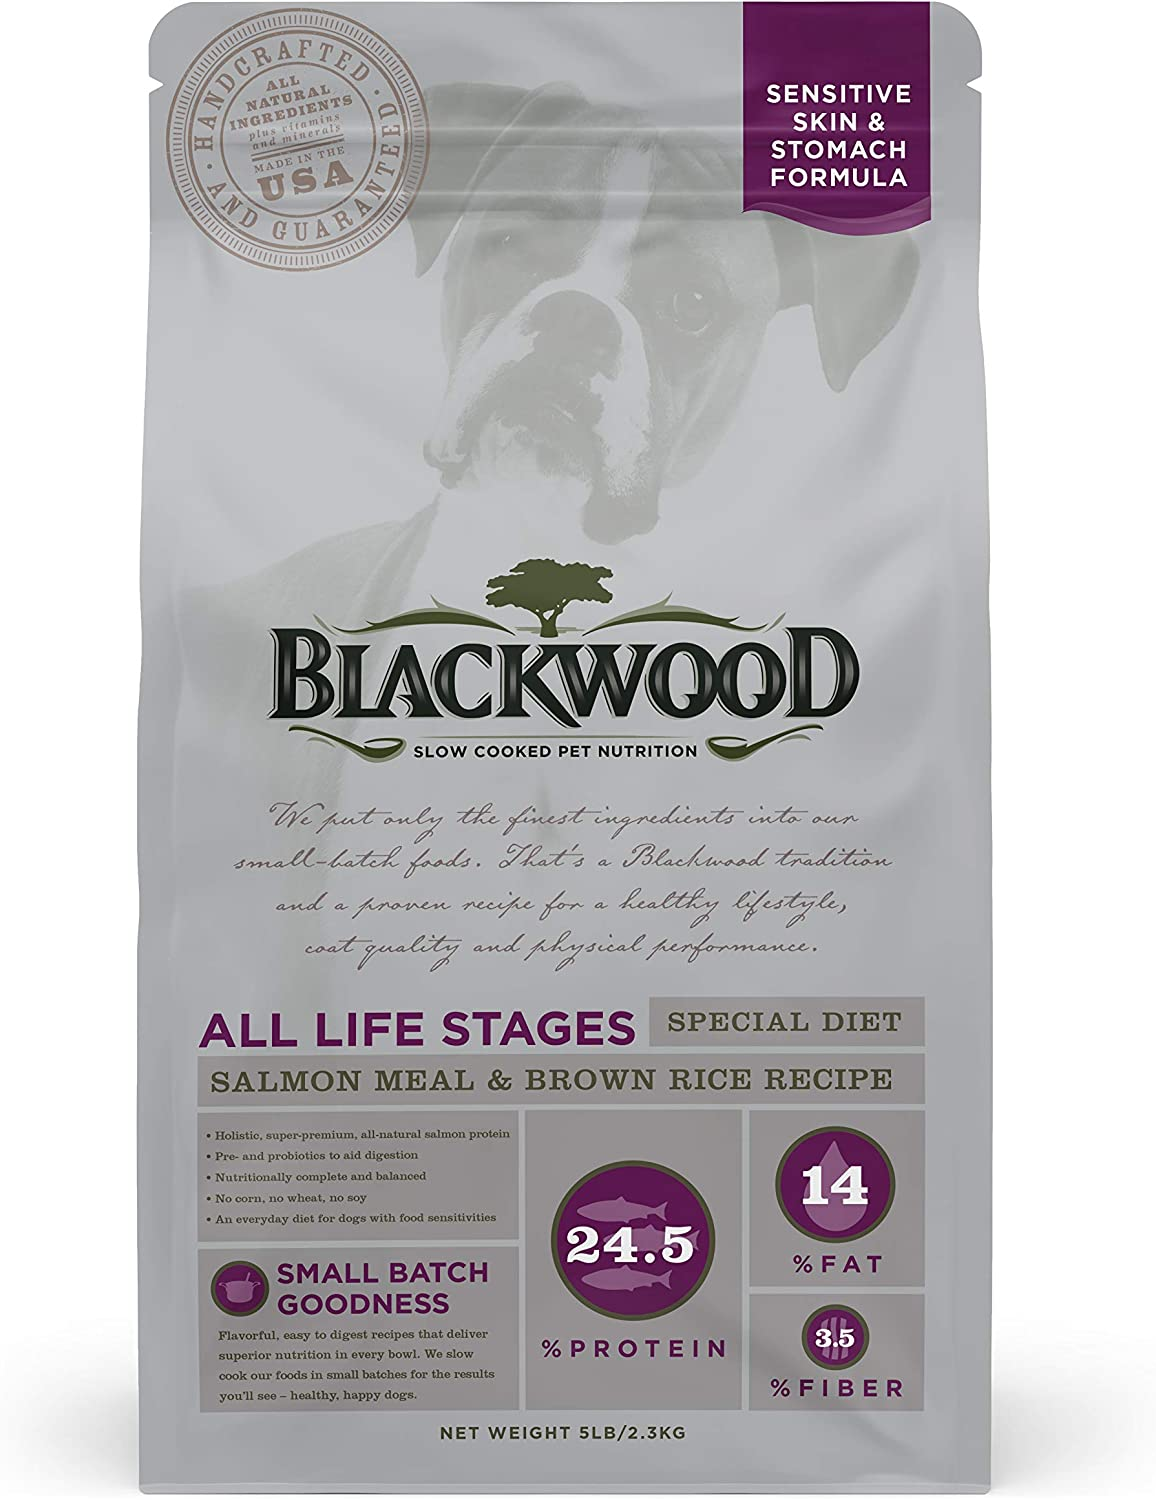 Blackwood Pet Sensitive Skin and Stomach Dog Food Made in USA [Special Diet Dry Dog Food to Solve Food Sensitivities Naturally], Ideal For All Life Stages